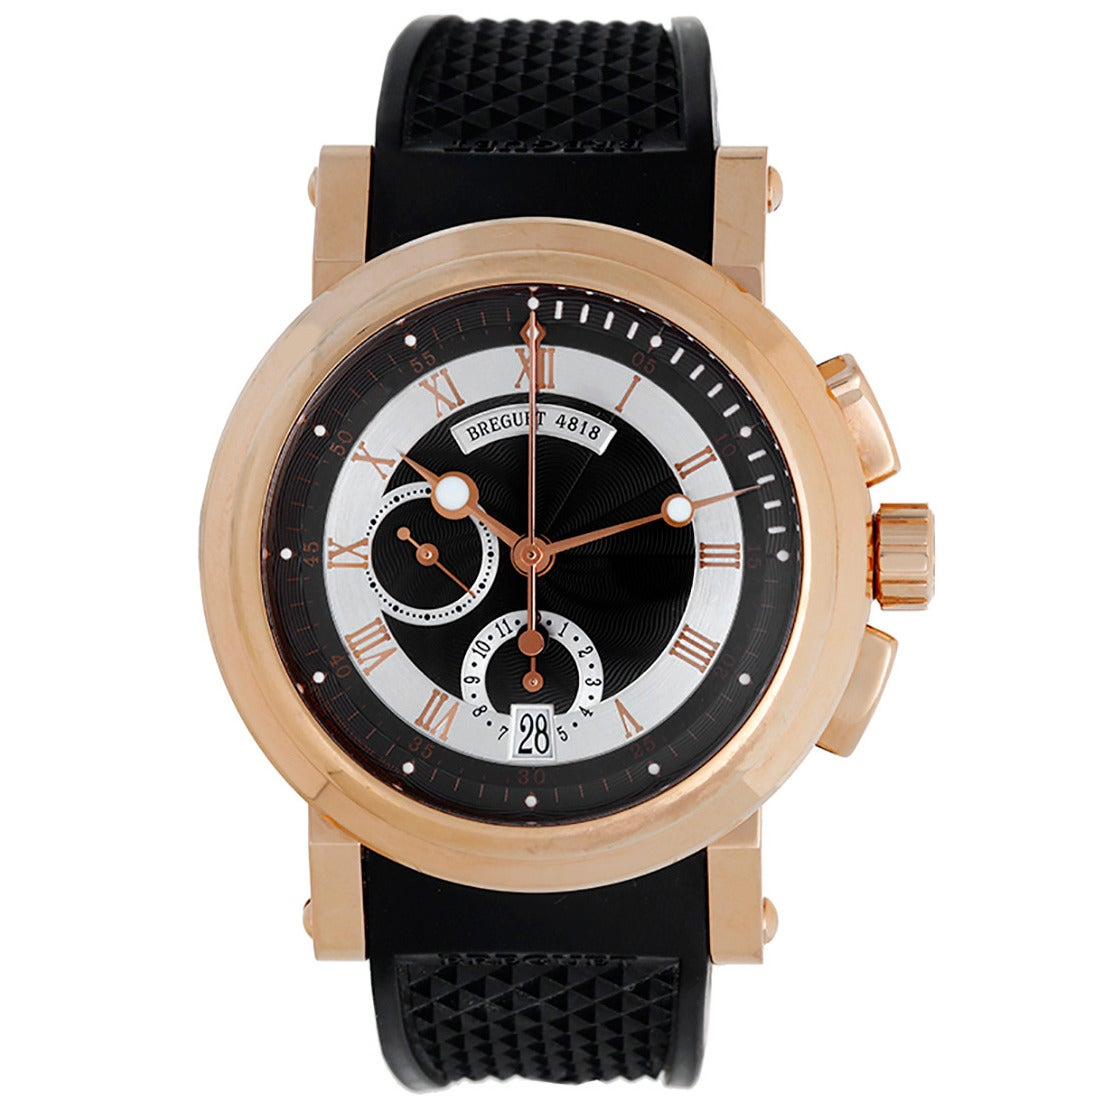 Breguet Rose Gold Marine II Big Date Flyback Chronograph Wristwatch